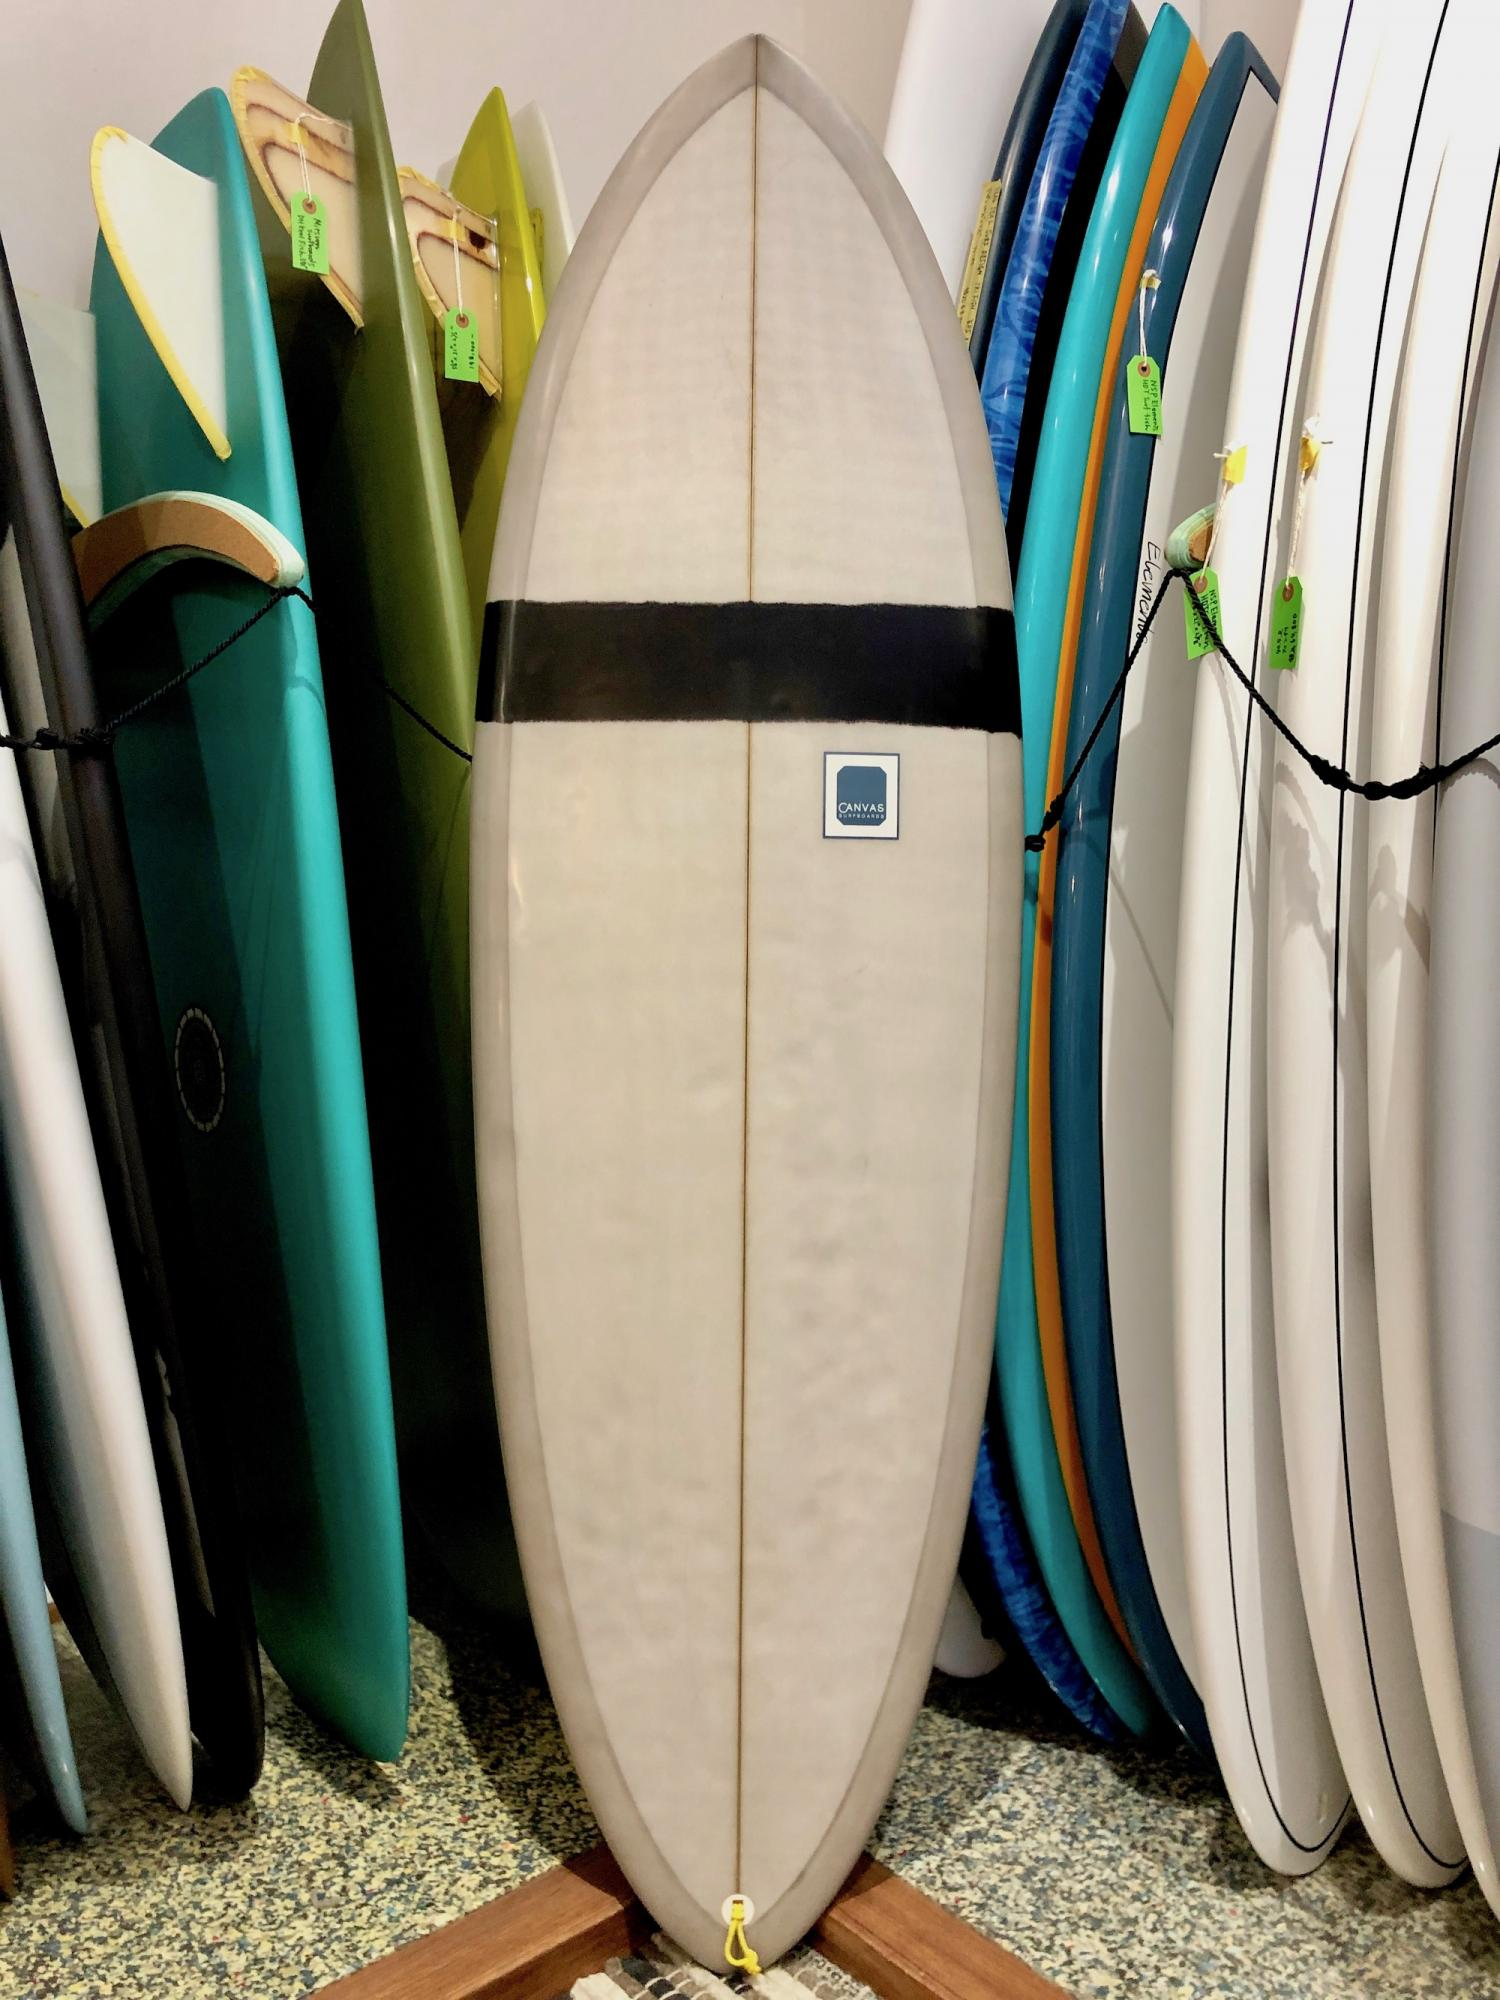 USED BOARDS (CANVAS SURFBOARDS Flow 5.6)